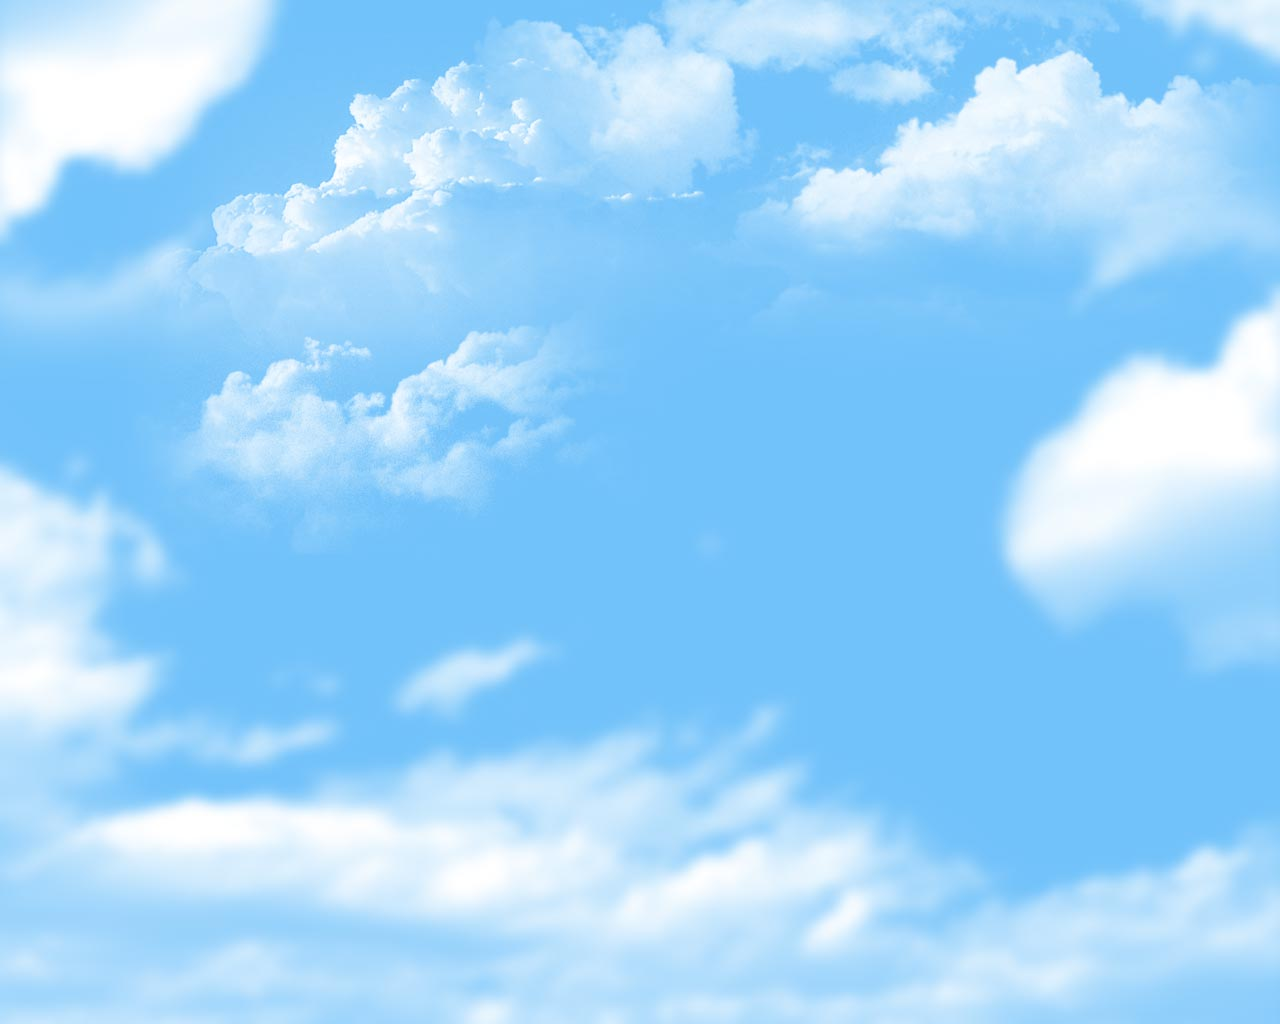 Air and Blue Sky Image